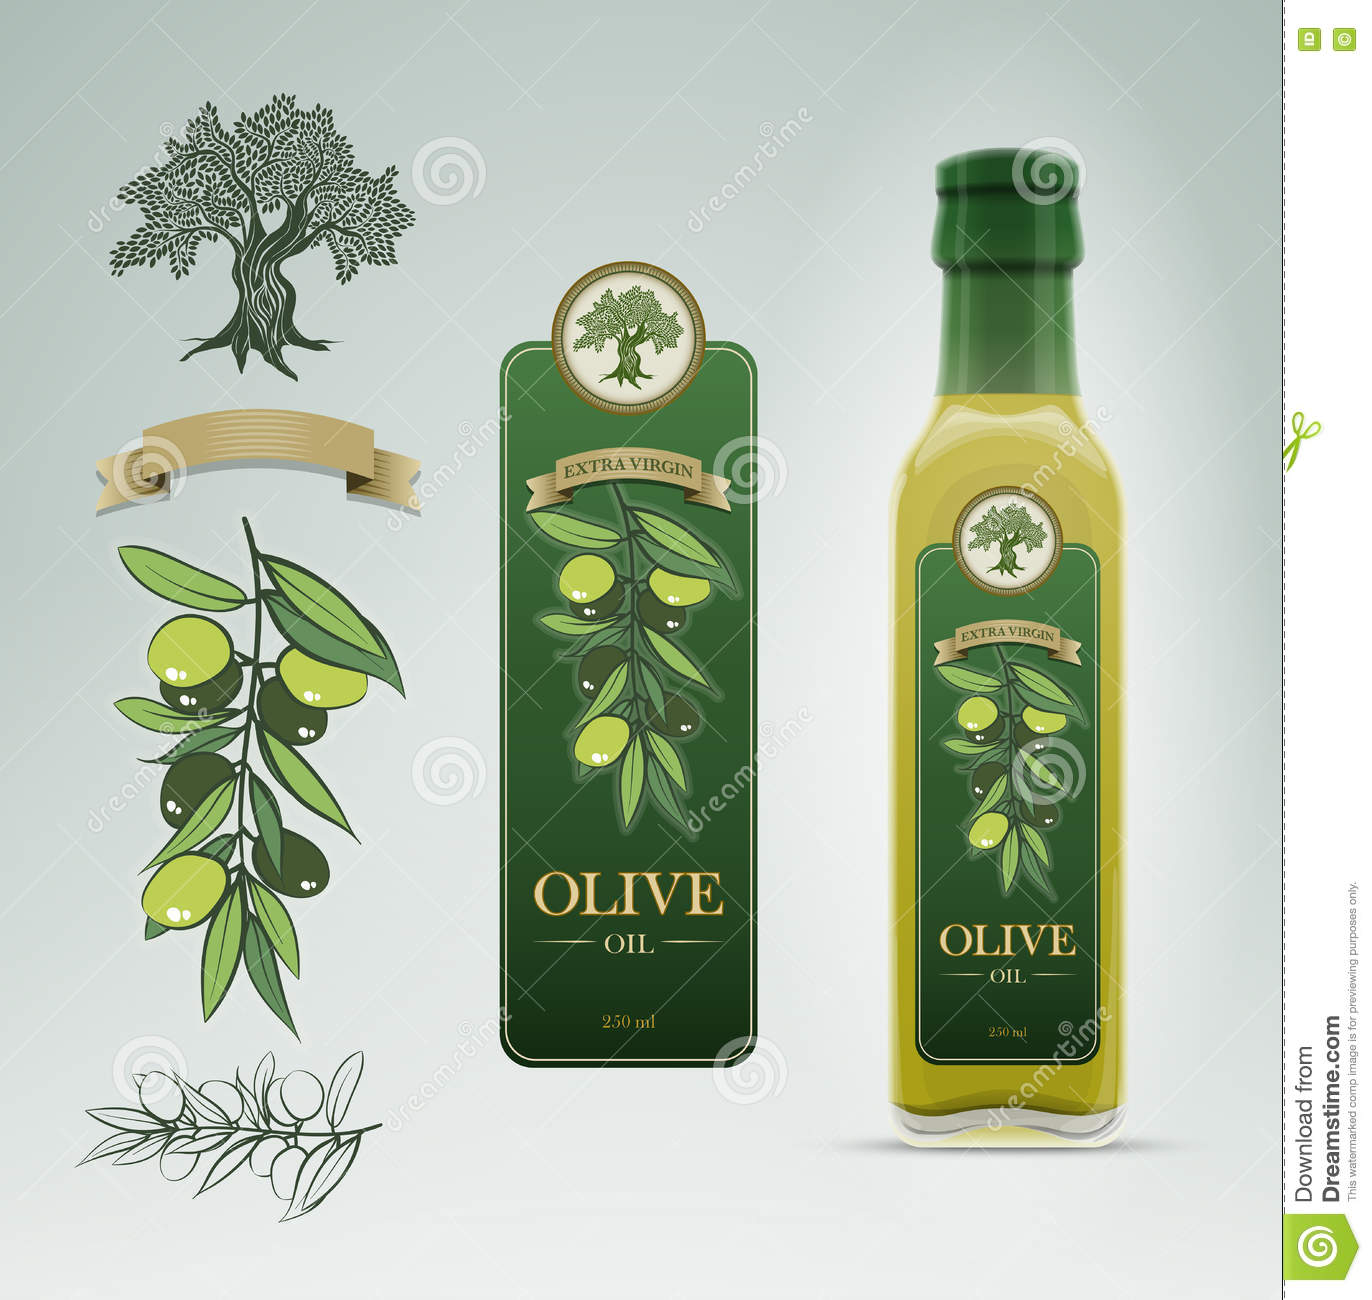 olive oil bottle and label design template stock vector